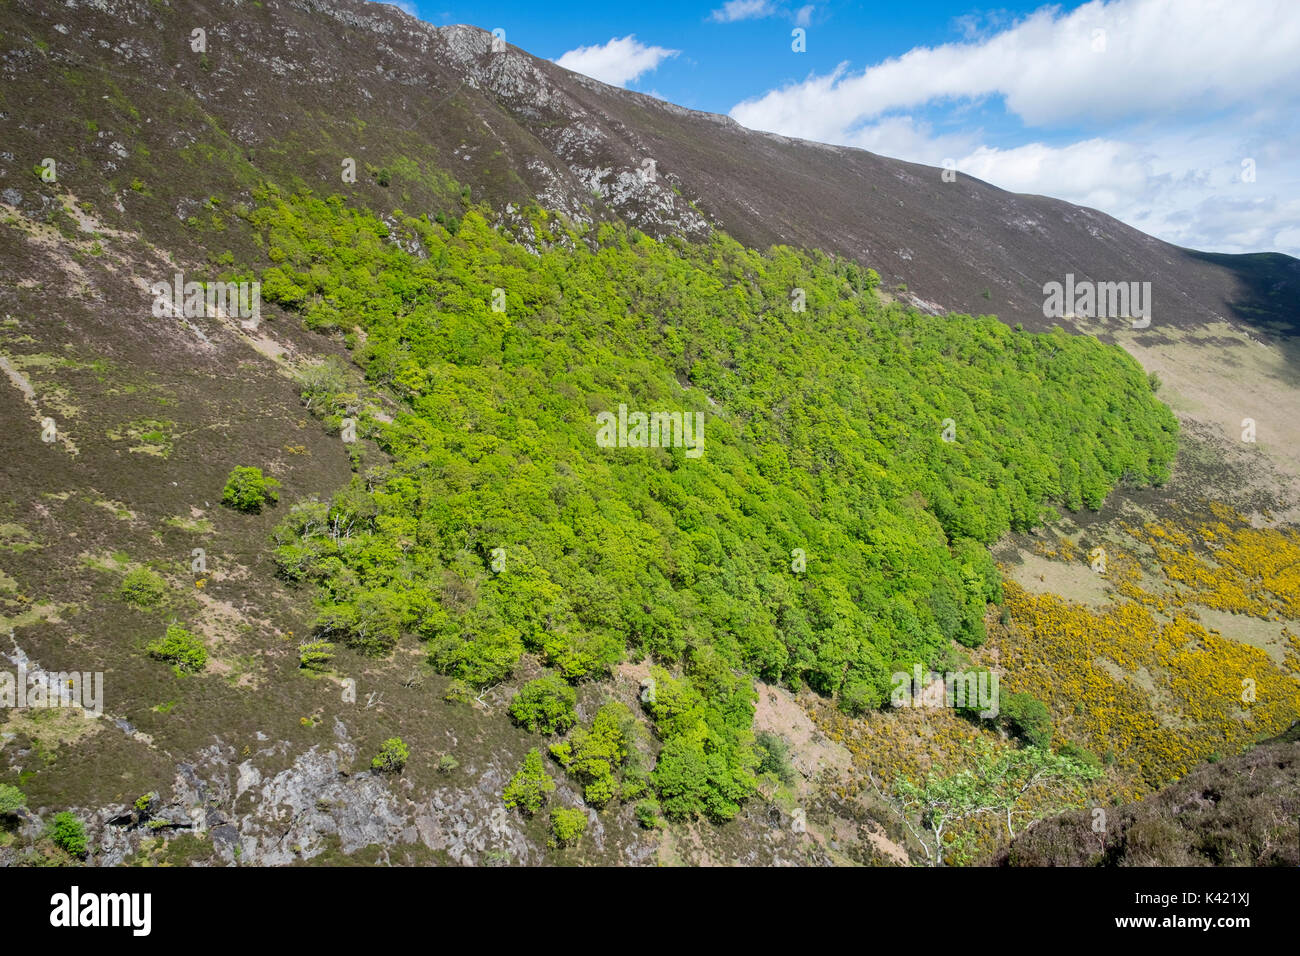 Oak woodland on steep slopes of Ard Crags in Lake District, England - Stock Image